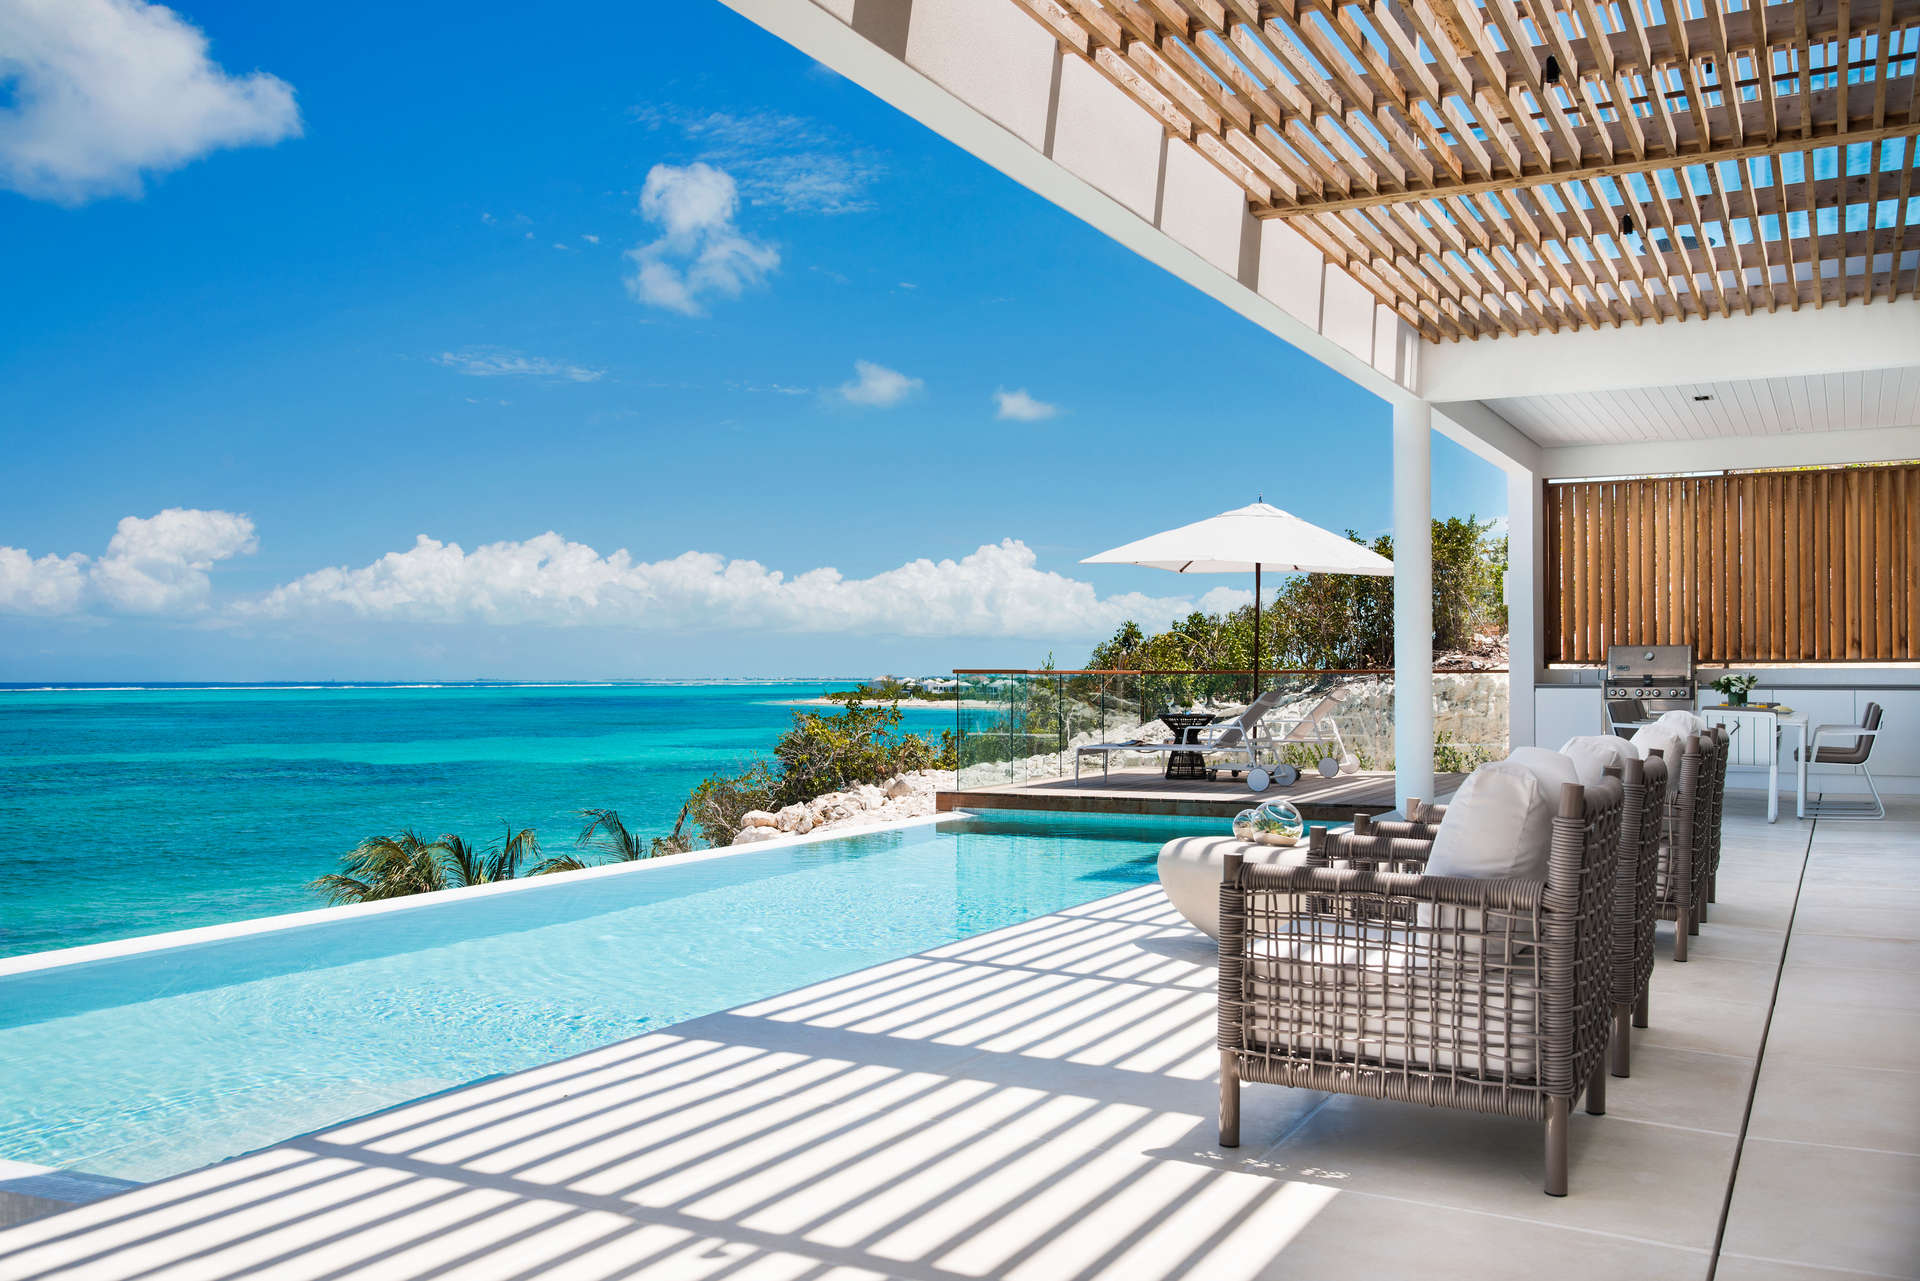 Luxury villa rentals caribbean - Turks and caicos - Providenciales - Beach enclave north shore - 4 Bedroom Beachfront Villa - Image 1/29